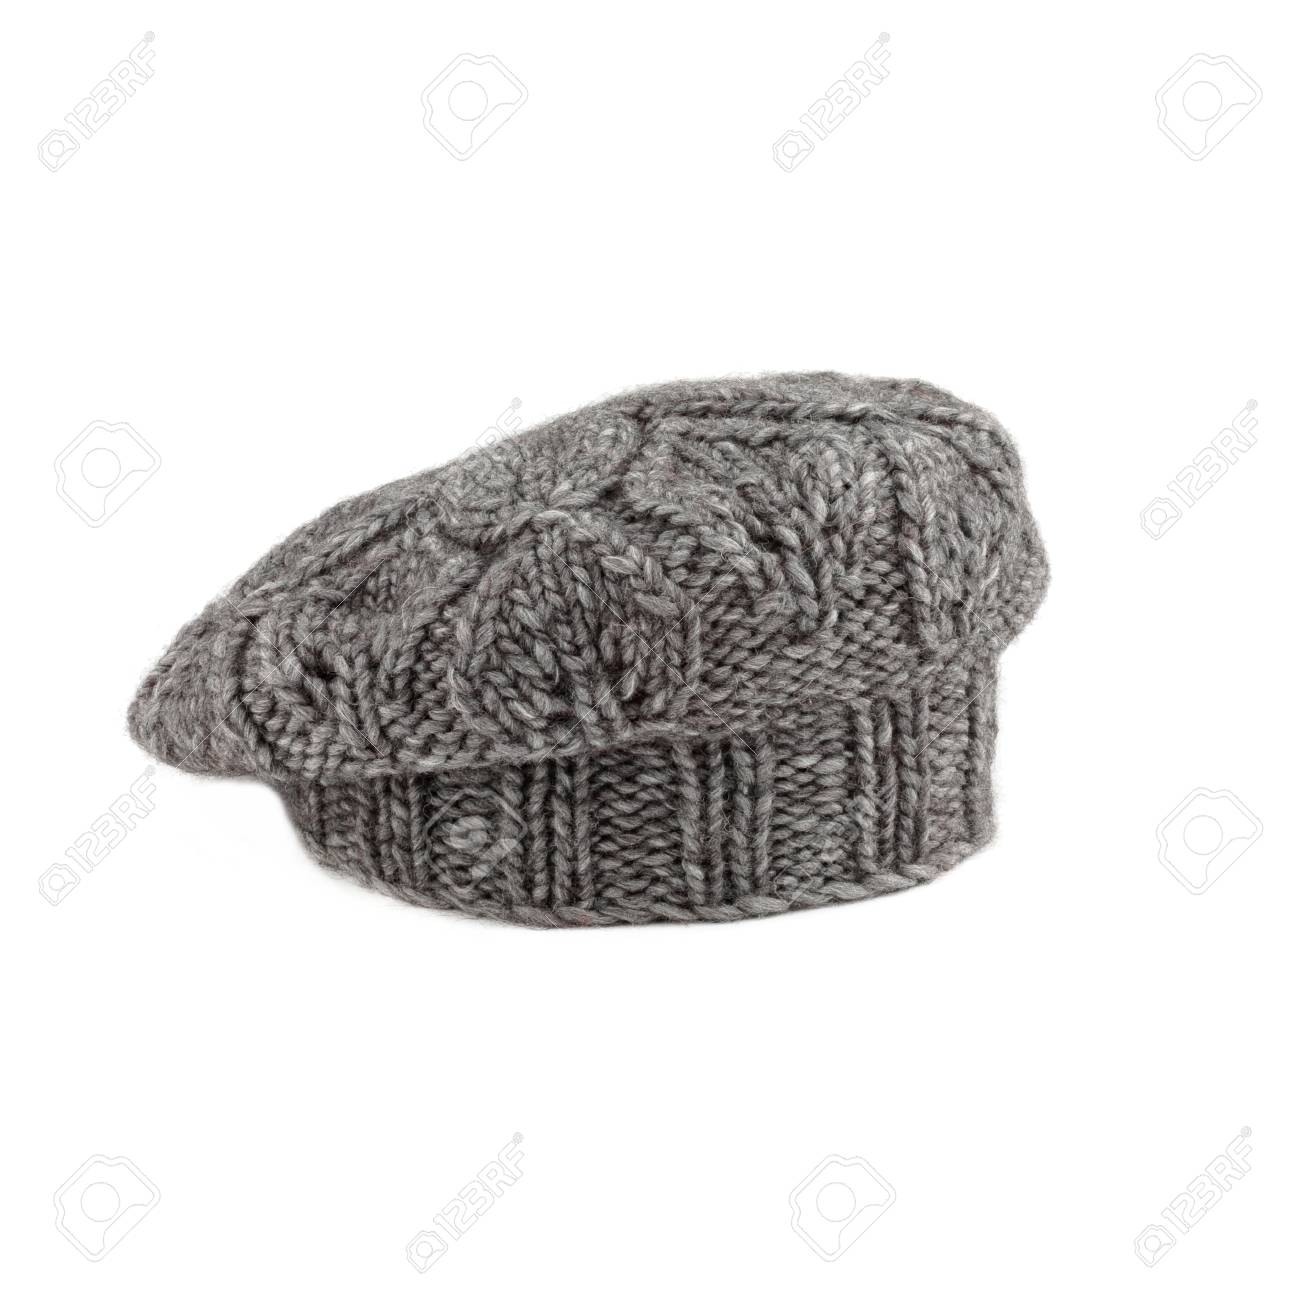 9b4b17fd489 woolen gray french beret on white background Stock Photo - 79416804